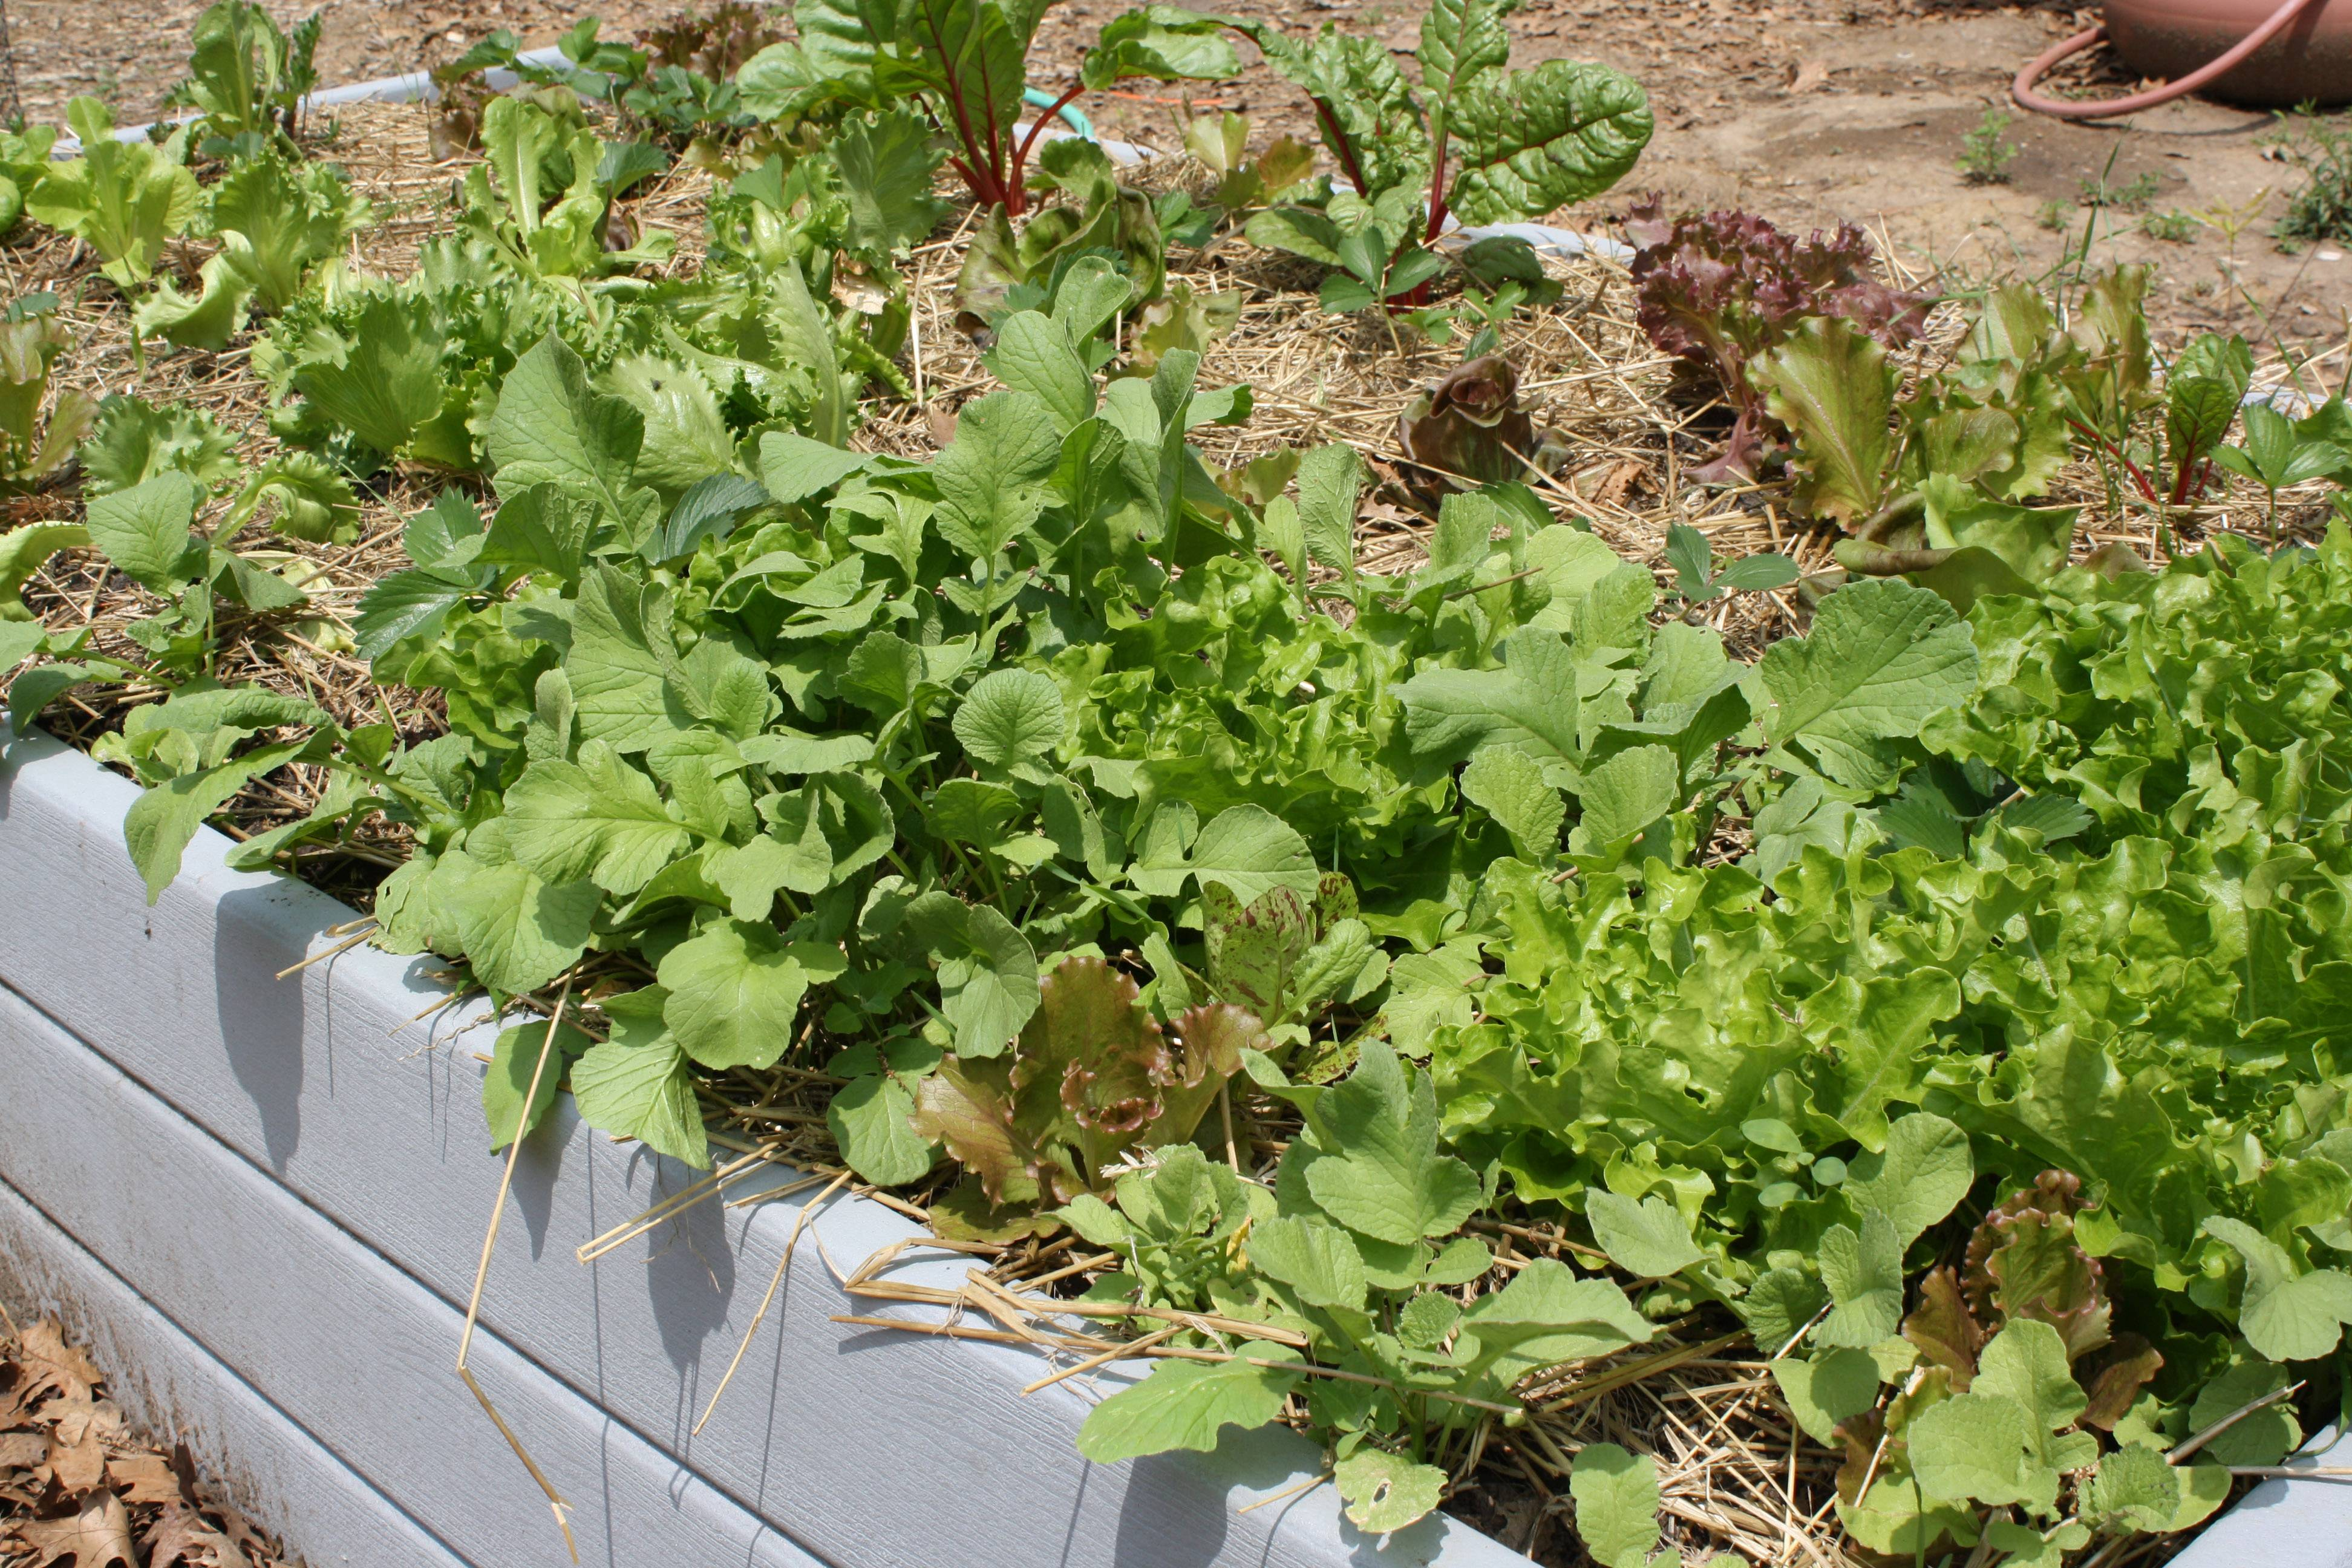 Bear board, a recycled plastic lumber, makes permanent raised beds ideal for raising vegetables.